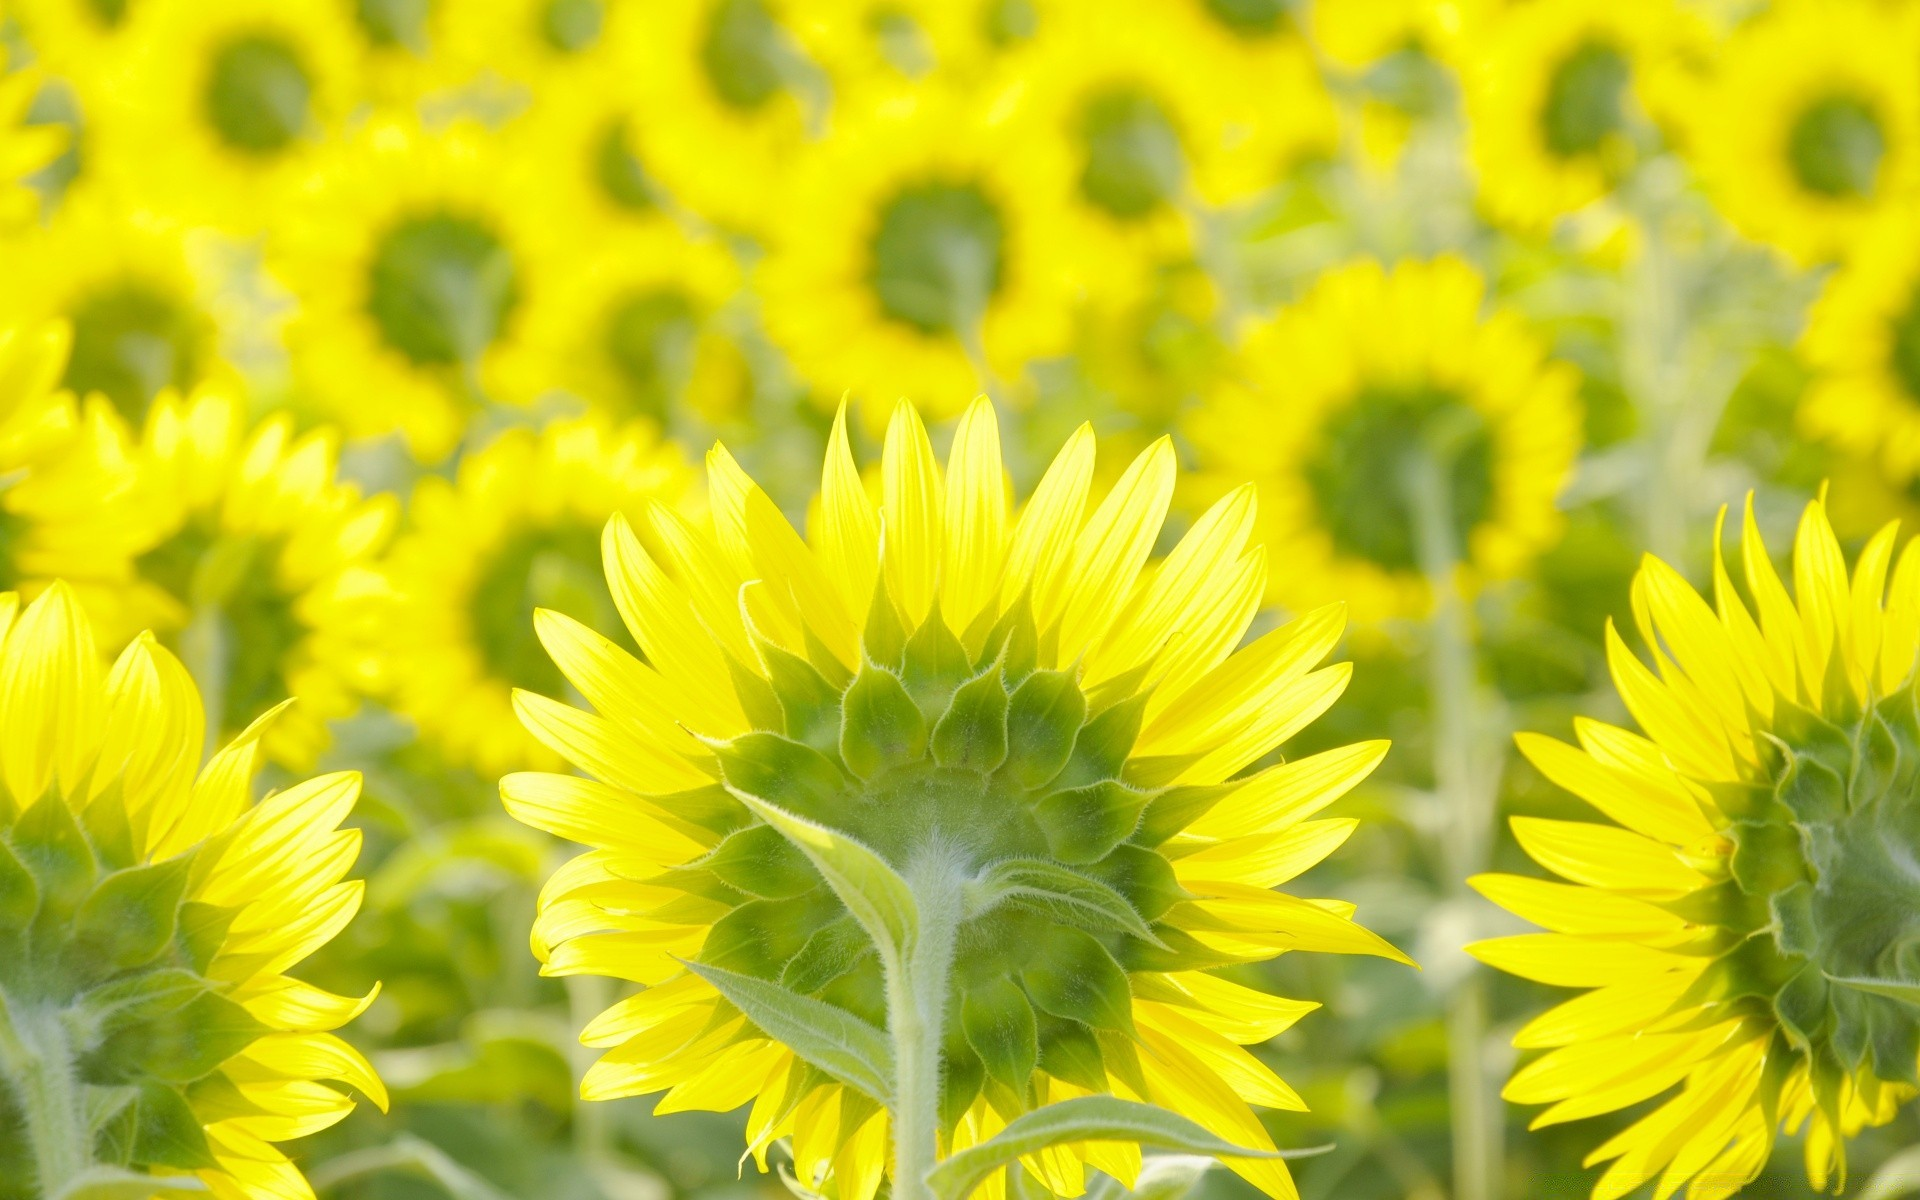 Sunflower Field Background Desktop Wallpapers For Free